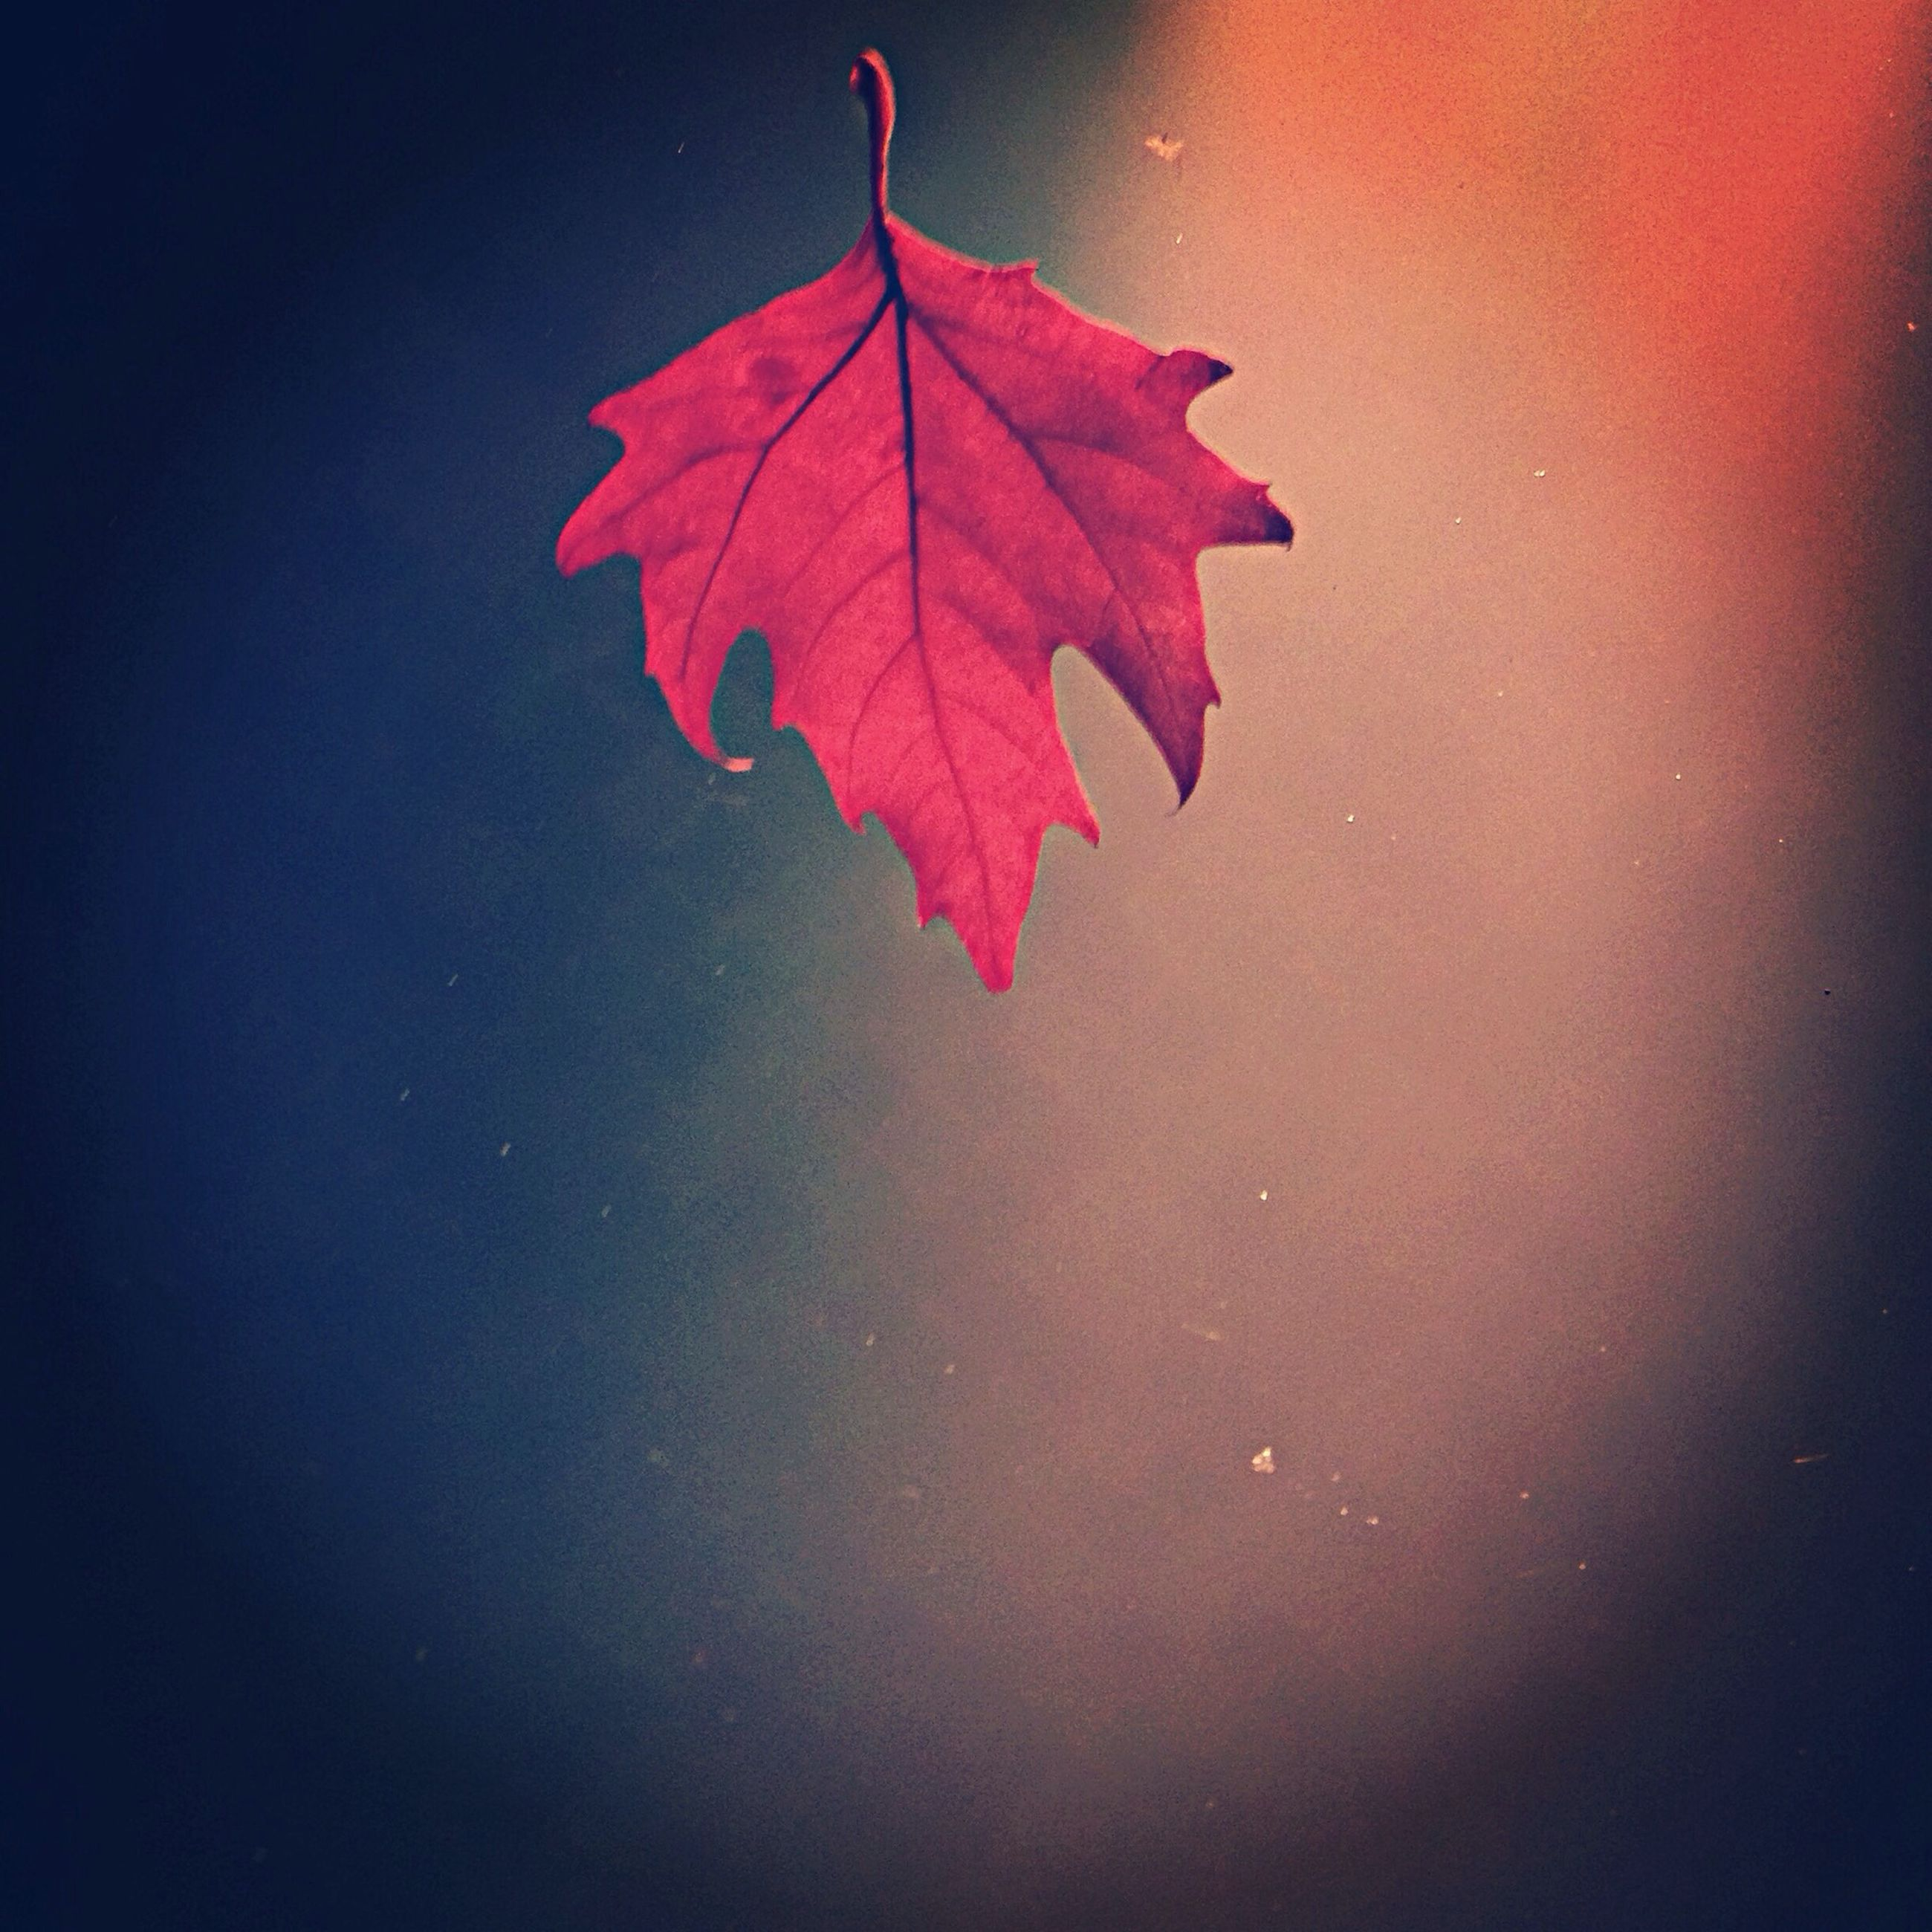 red, leaf, close-up, single object, autumn, maple leaf, star shape, no people, nature, water, outdoors, change, season, day, wet, leaf vein, studio shot, high angle view, pink color, umbrella